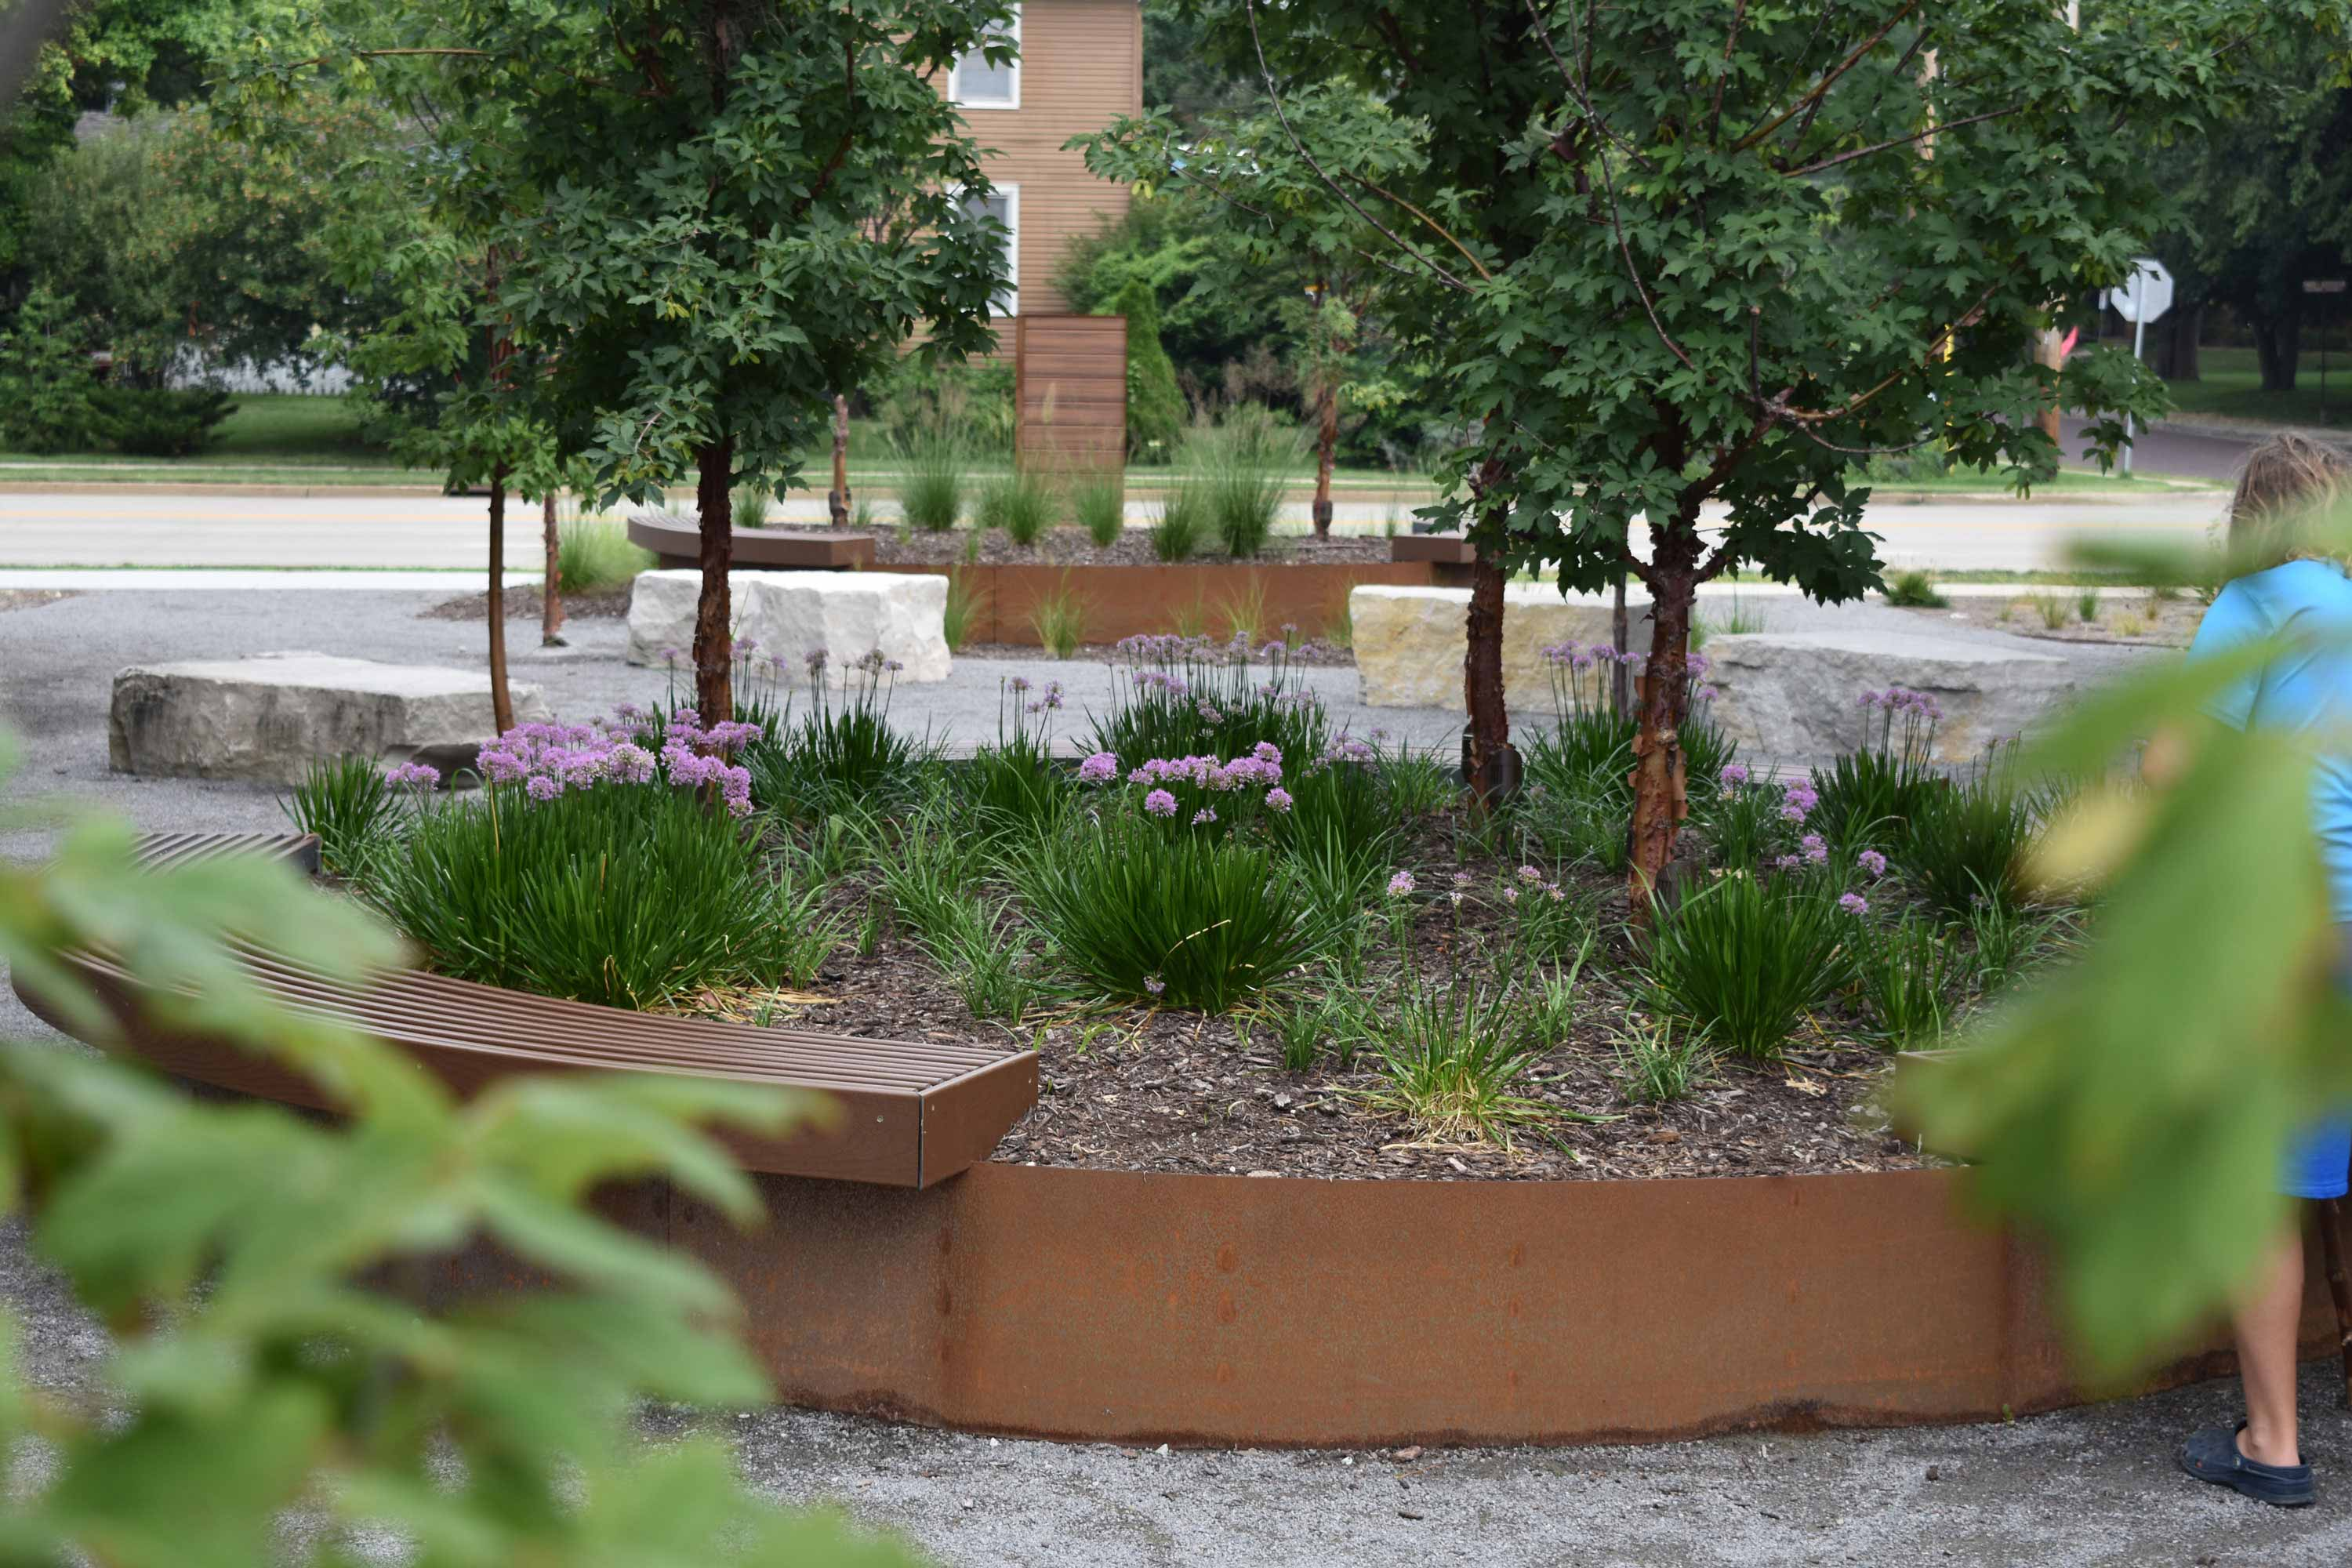 Corten steel planters placed around the site of The Foundry in Bloomington IL